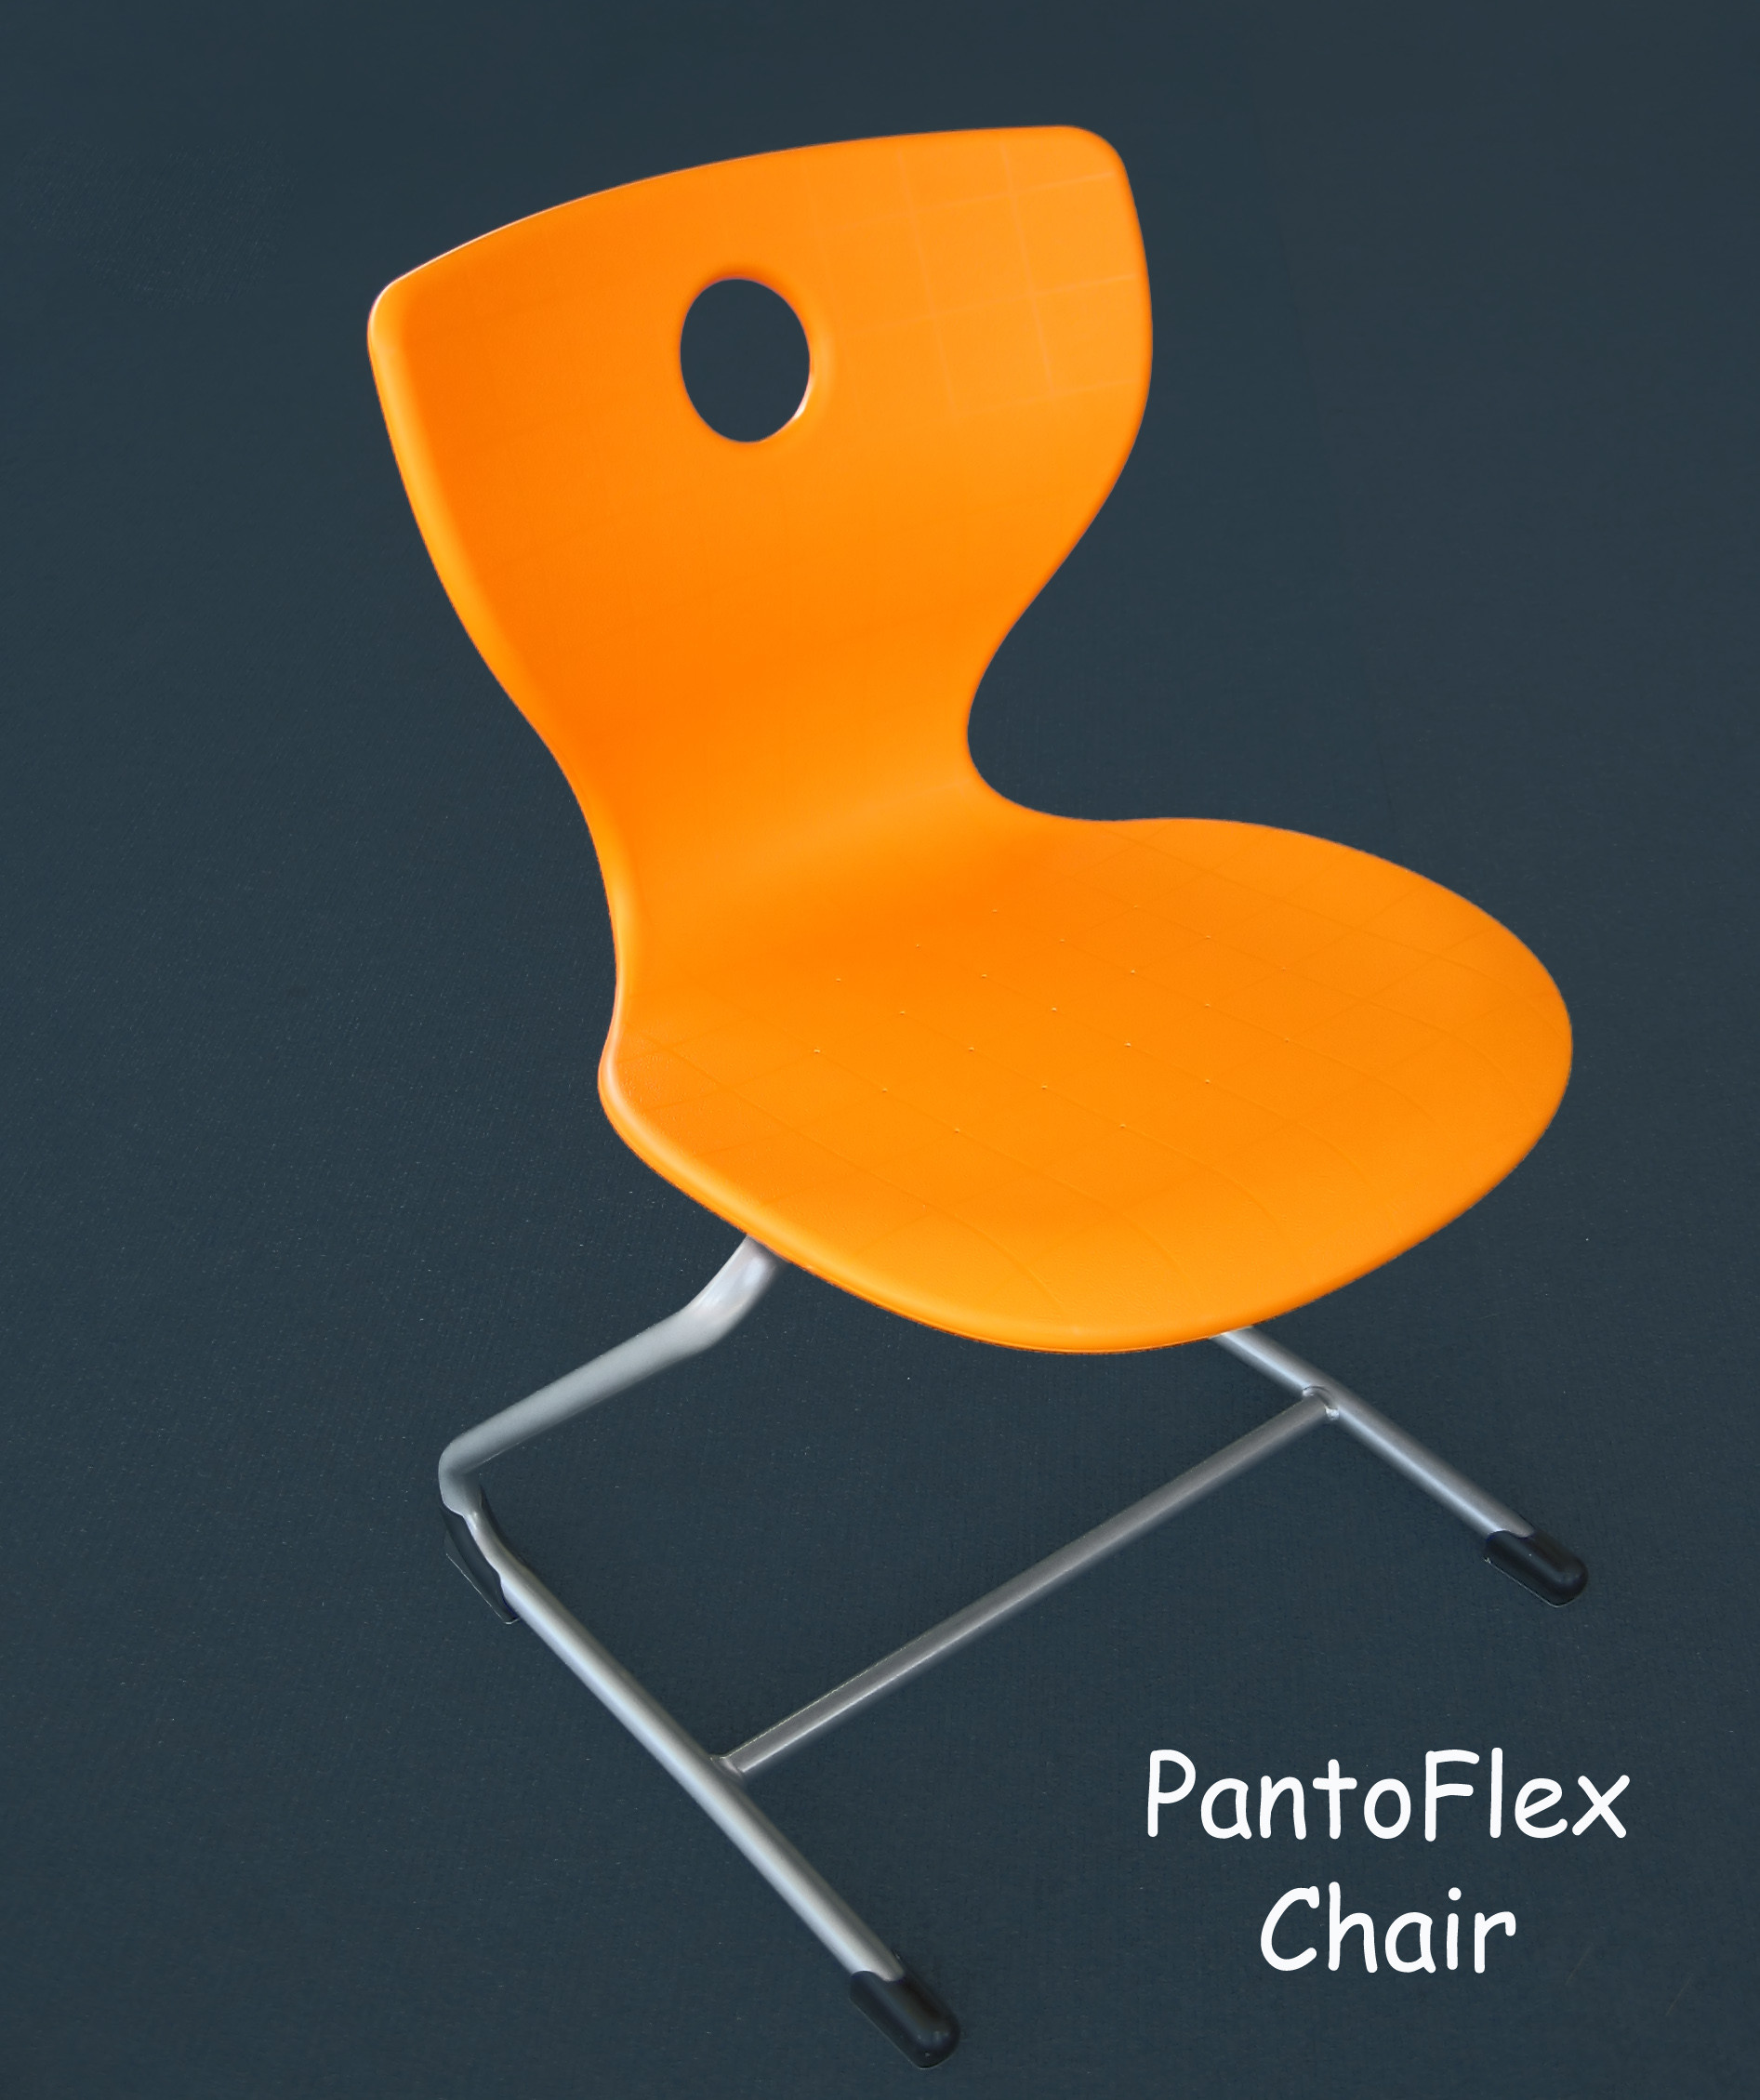 PANTOFLEX CHAIR